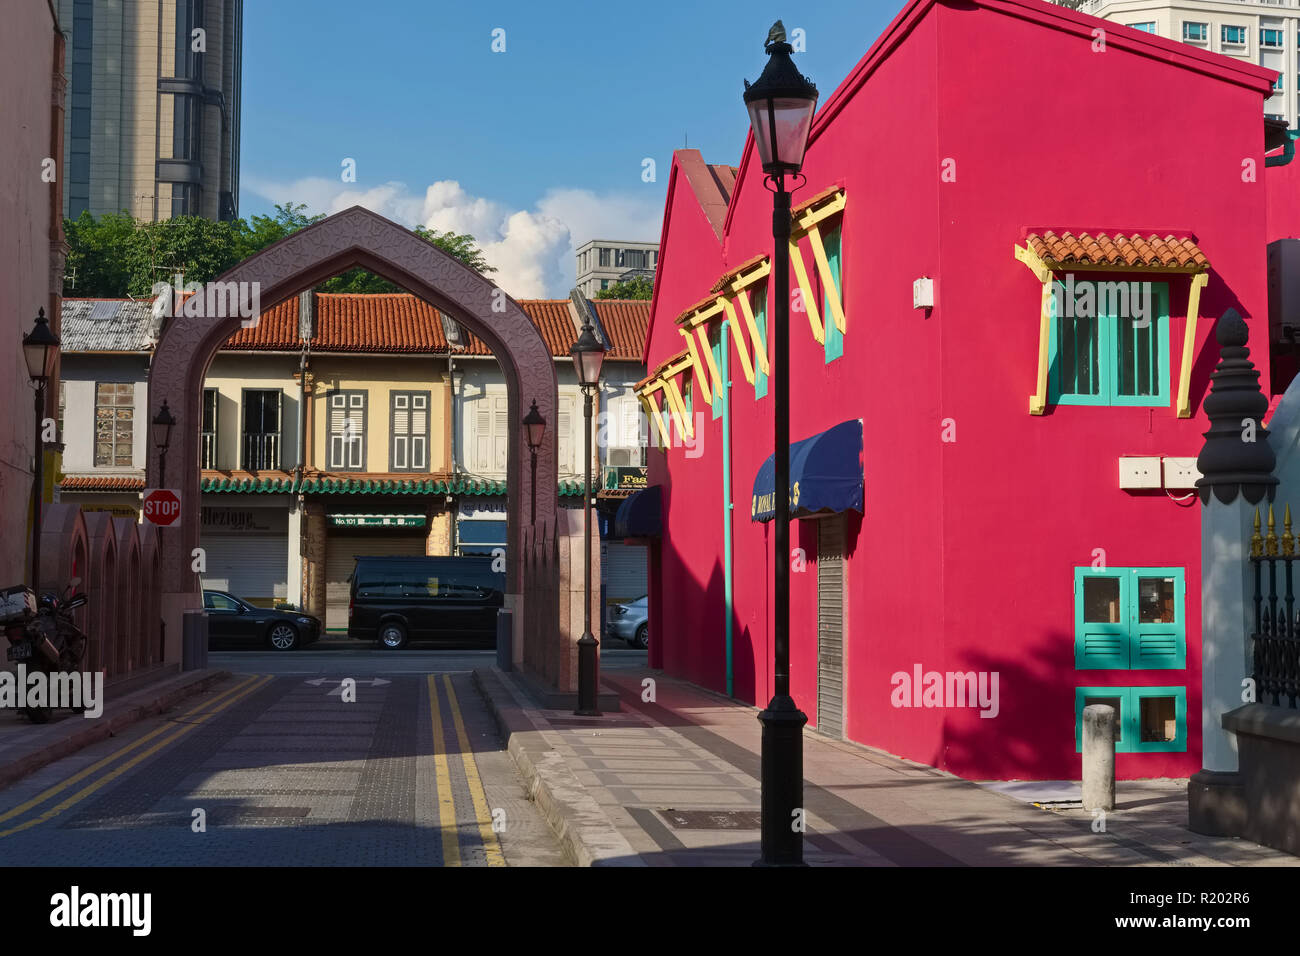 Prettily restored Kampong Glam area in Singapore, traditionally a Muslim area, with Arab Street and Haji Lane behind the arch and Sultan Mosque nearby - Stock Image